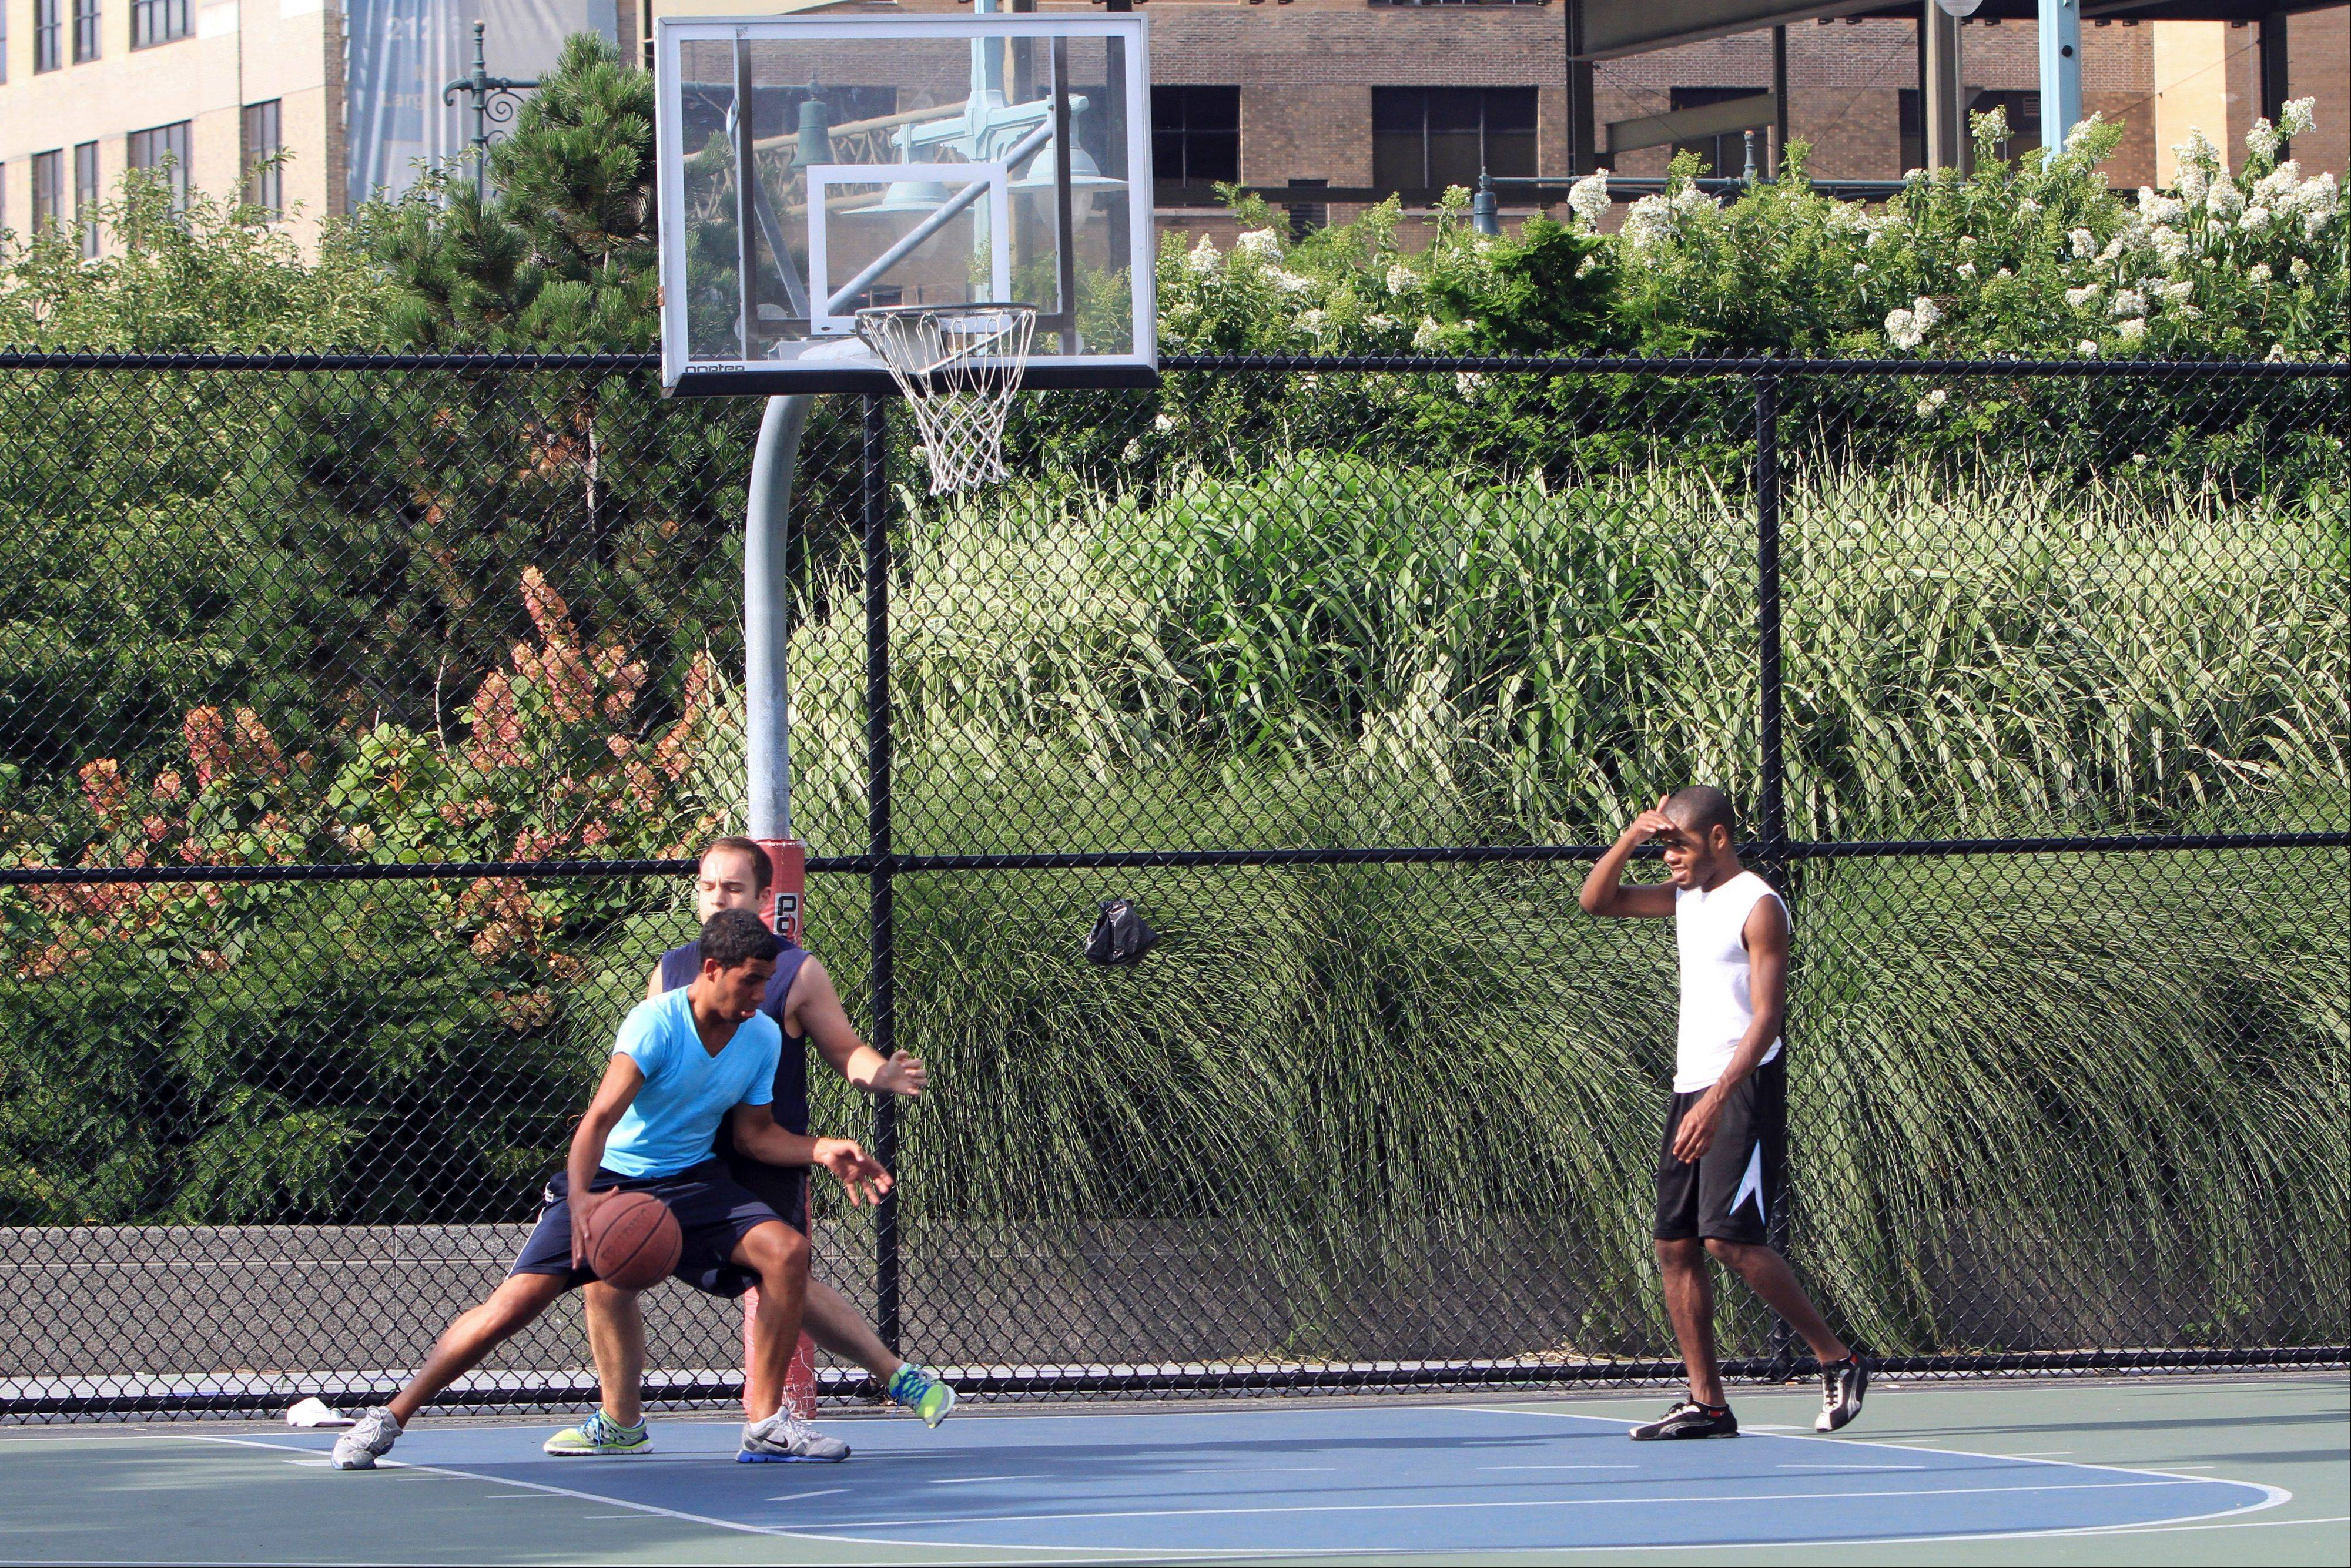 Basketball is available in New York's Hudson River Park in Lower Manhattan. The park also features a bike path, green spaces, playgrounds and recreation ranging from mini-golf and skateboarding to kayaking.